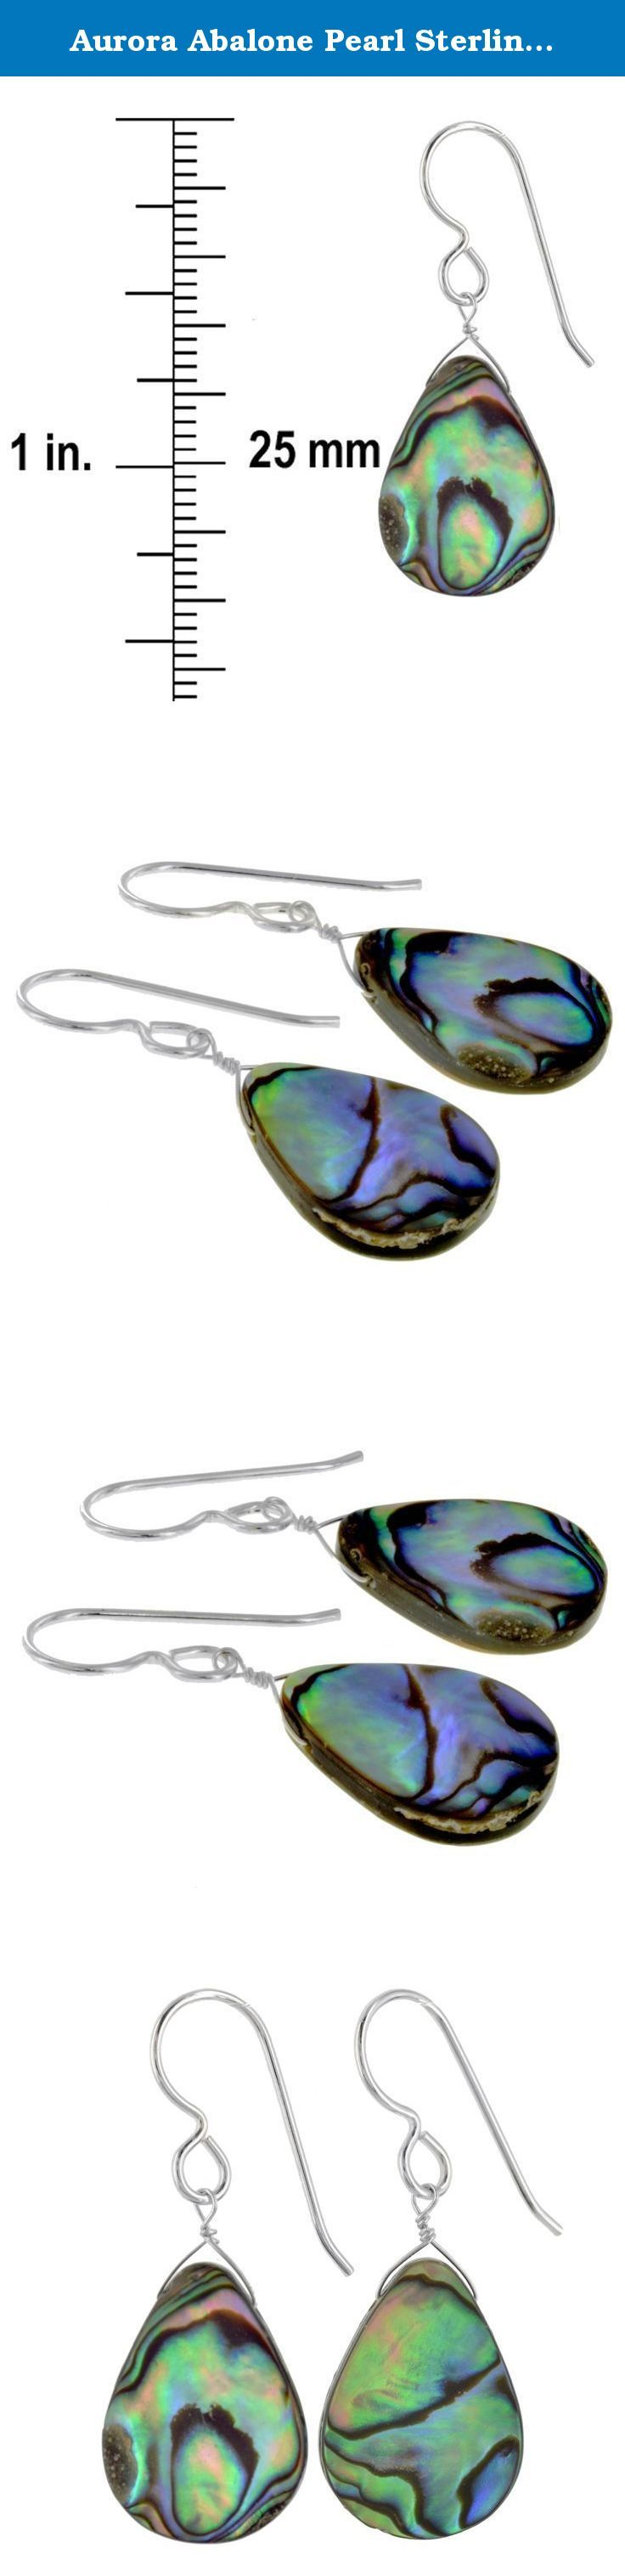 Aurora Abalone Pearl Sterling Silver Handmade Earrings by Ashanti. Two beautiful Aurora Mother of Pearl gemstones take centre stage in this creation. Their colors bring to mind dancing northern lights as blue, green, purple and black twist and turn in a variety of patterns. This means that no 2 stones are alike, each one displaying a different dimension of nature's playfulness. Weighing approximately 8 carats in total, the Mother of Pearls are teamed with gleaming 925 Sterling Silver…